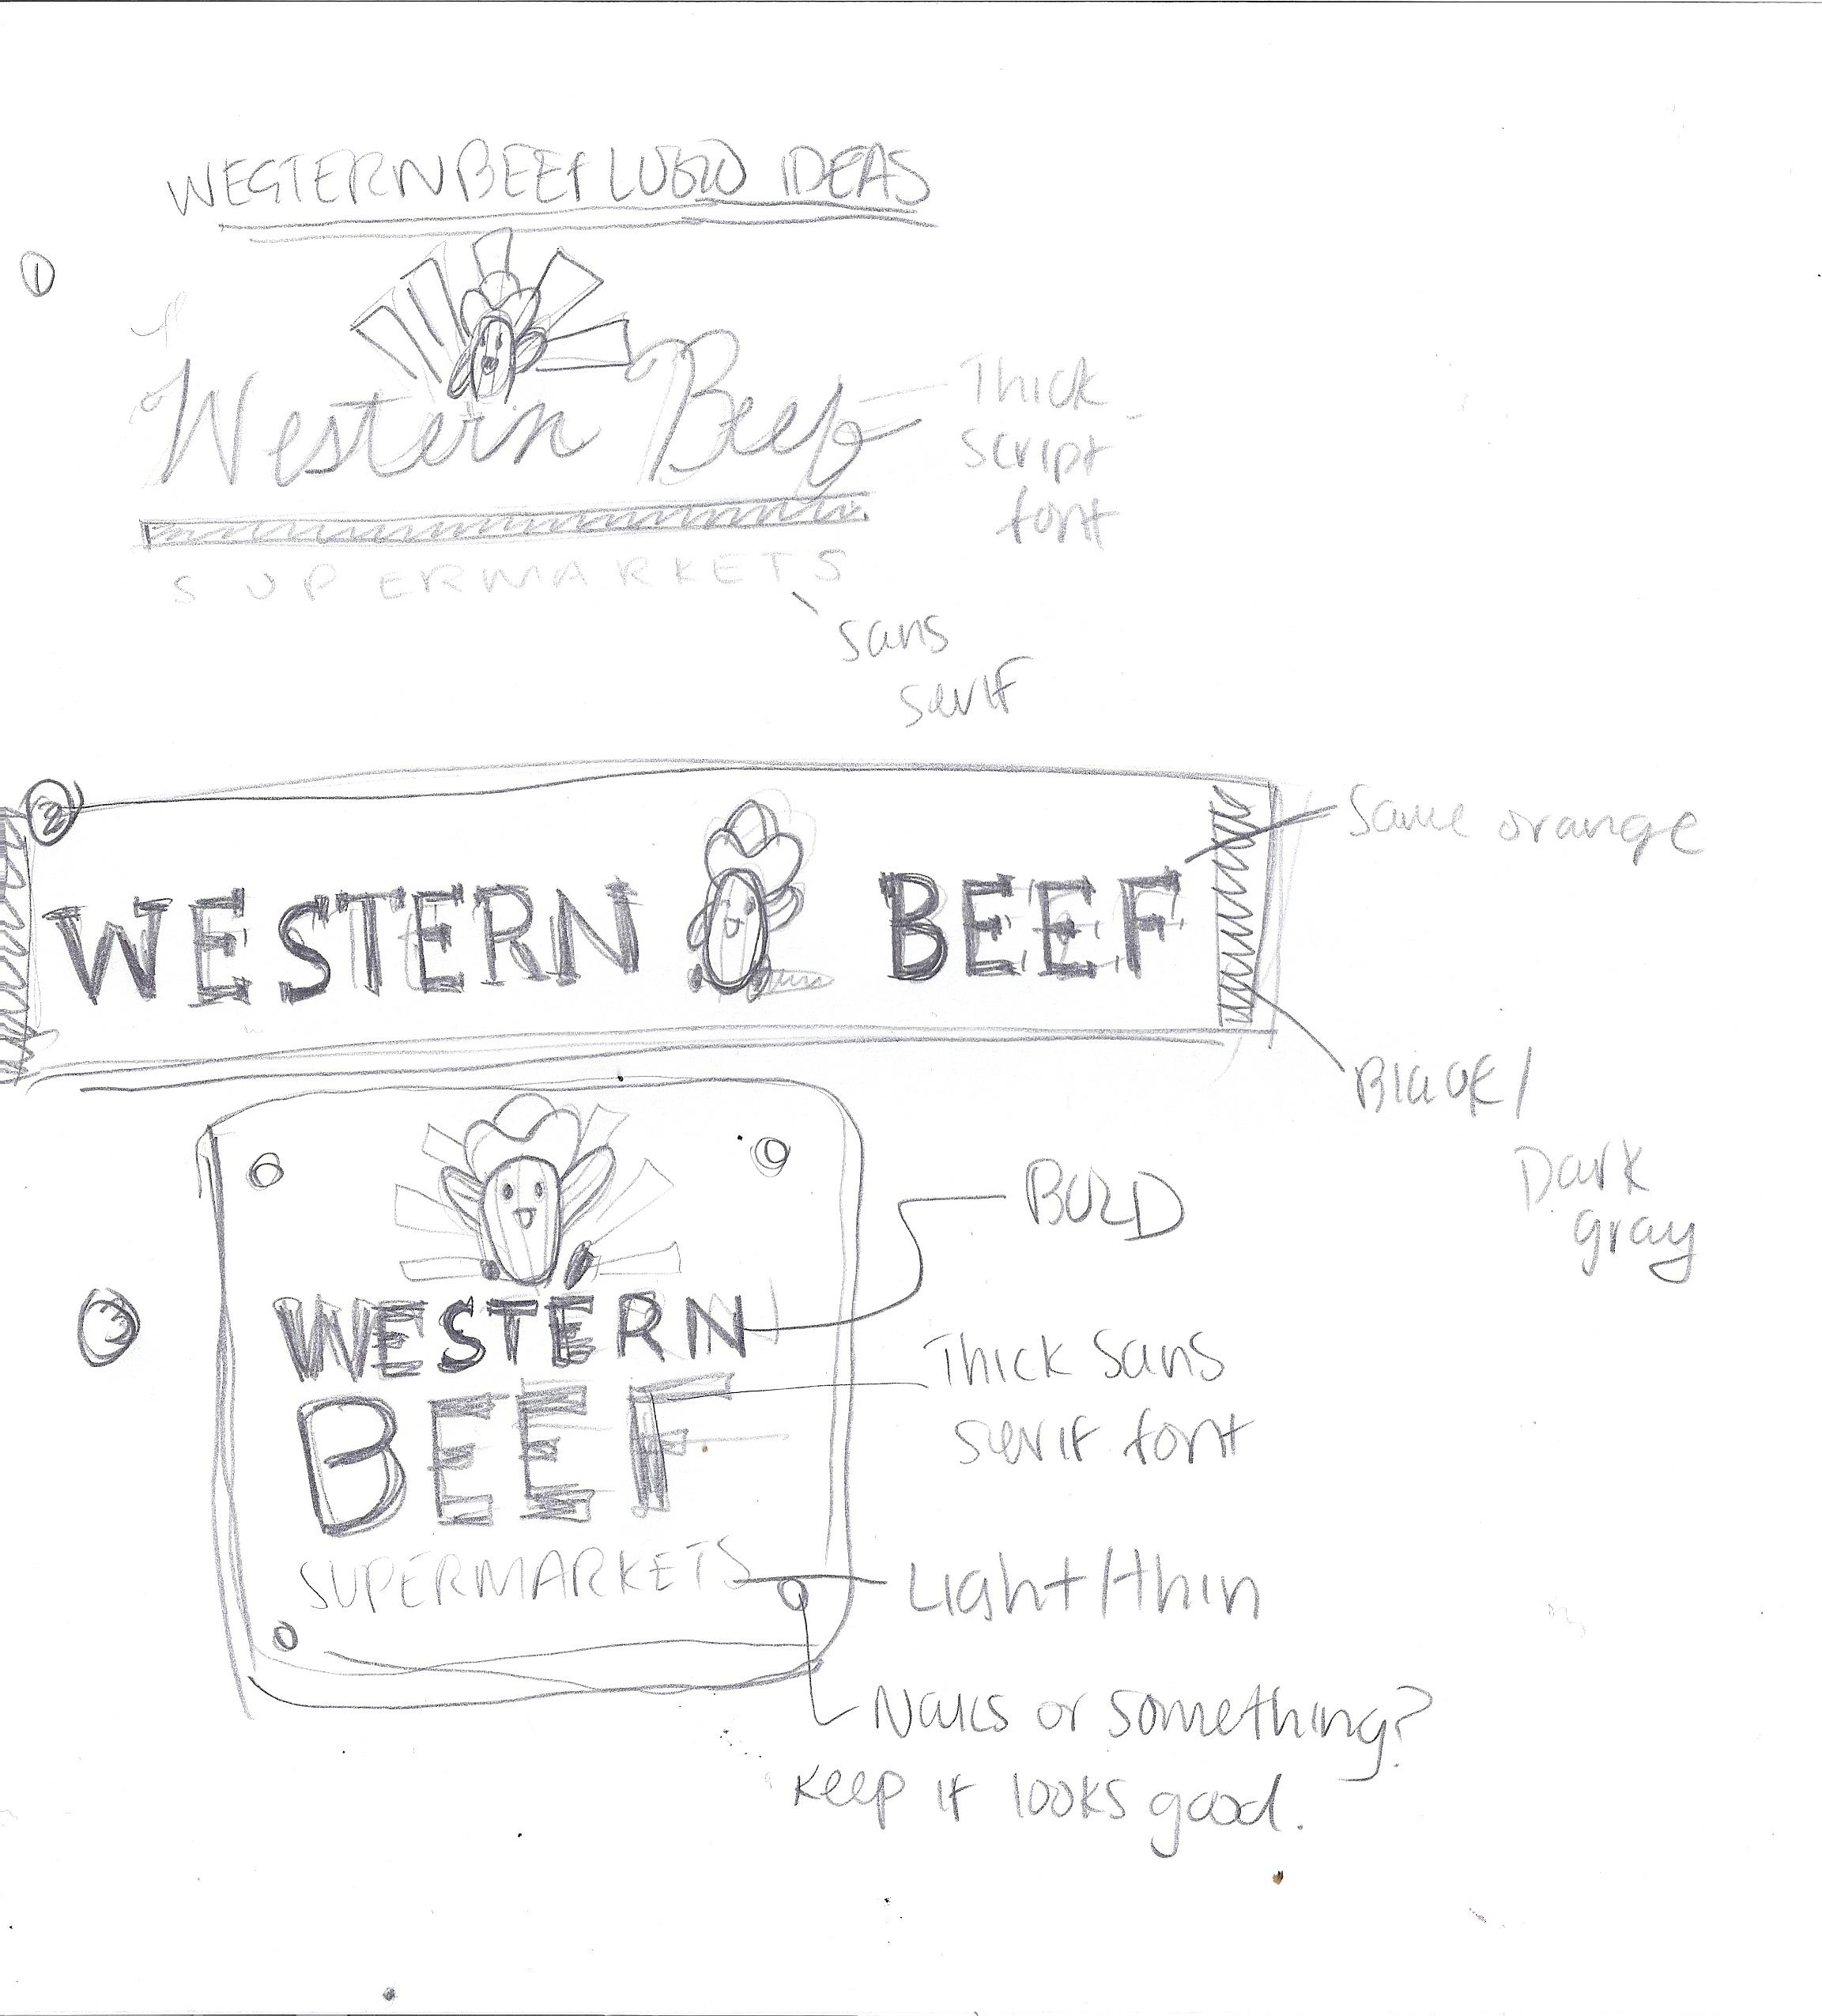 Western Beef Logo Redesign - image 1 - student project